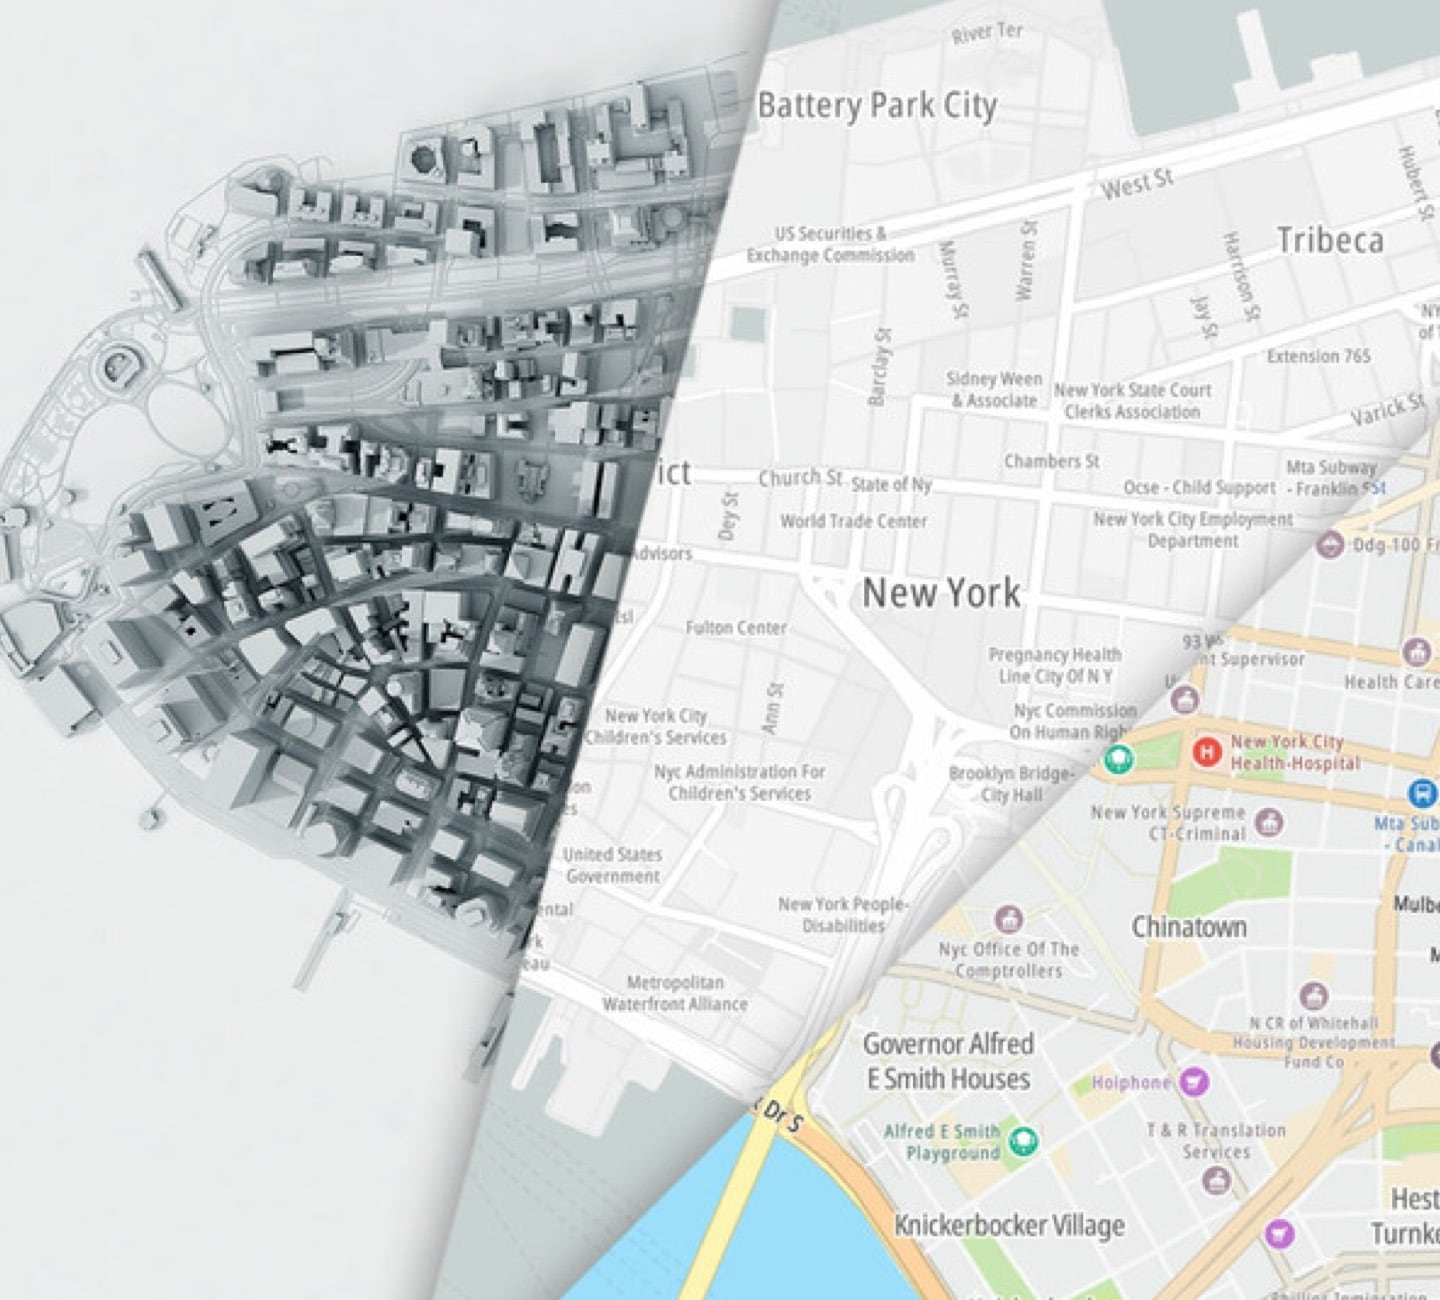 More sensors mean more detail. As MoMa van sensors evolve, TomTom can add more detail and accuracy to maps.